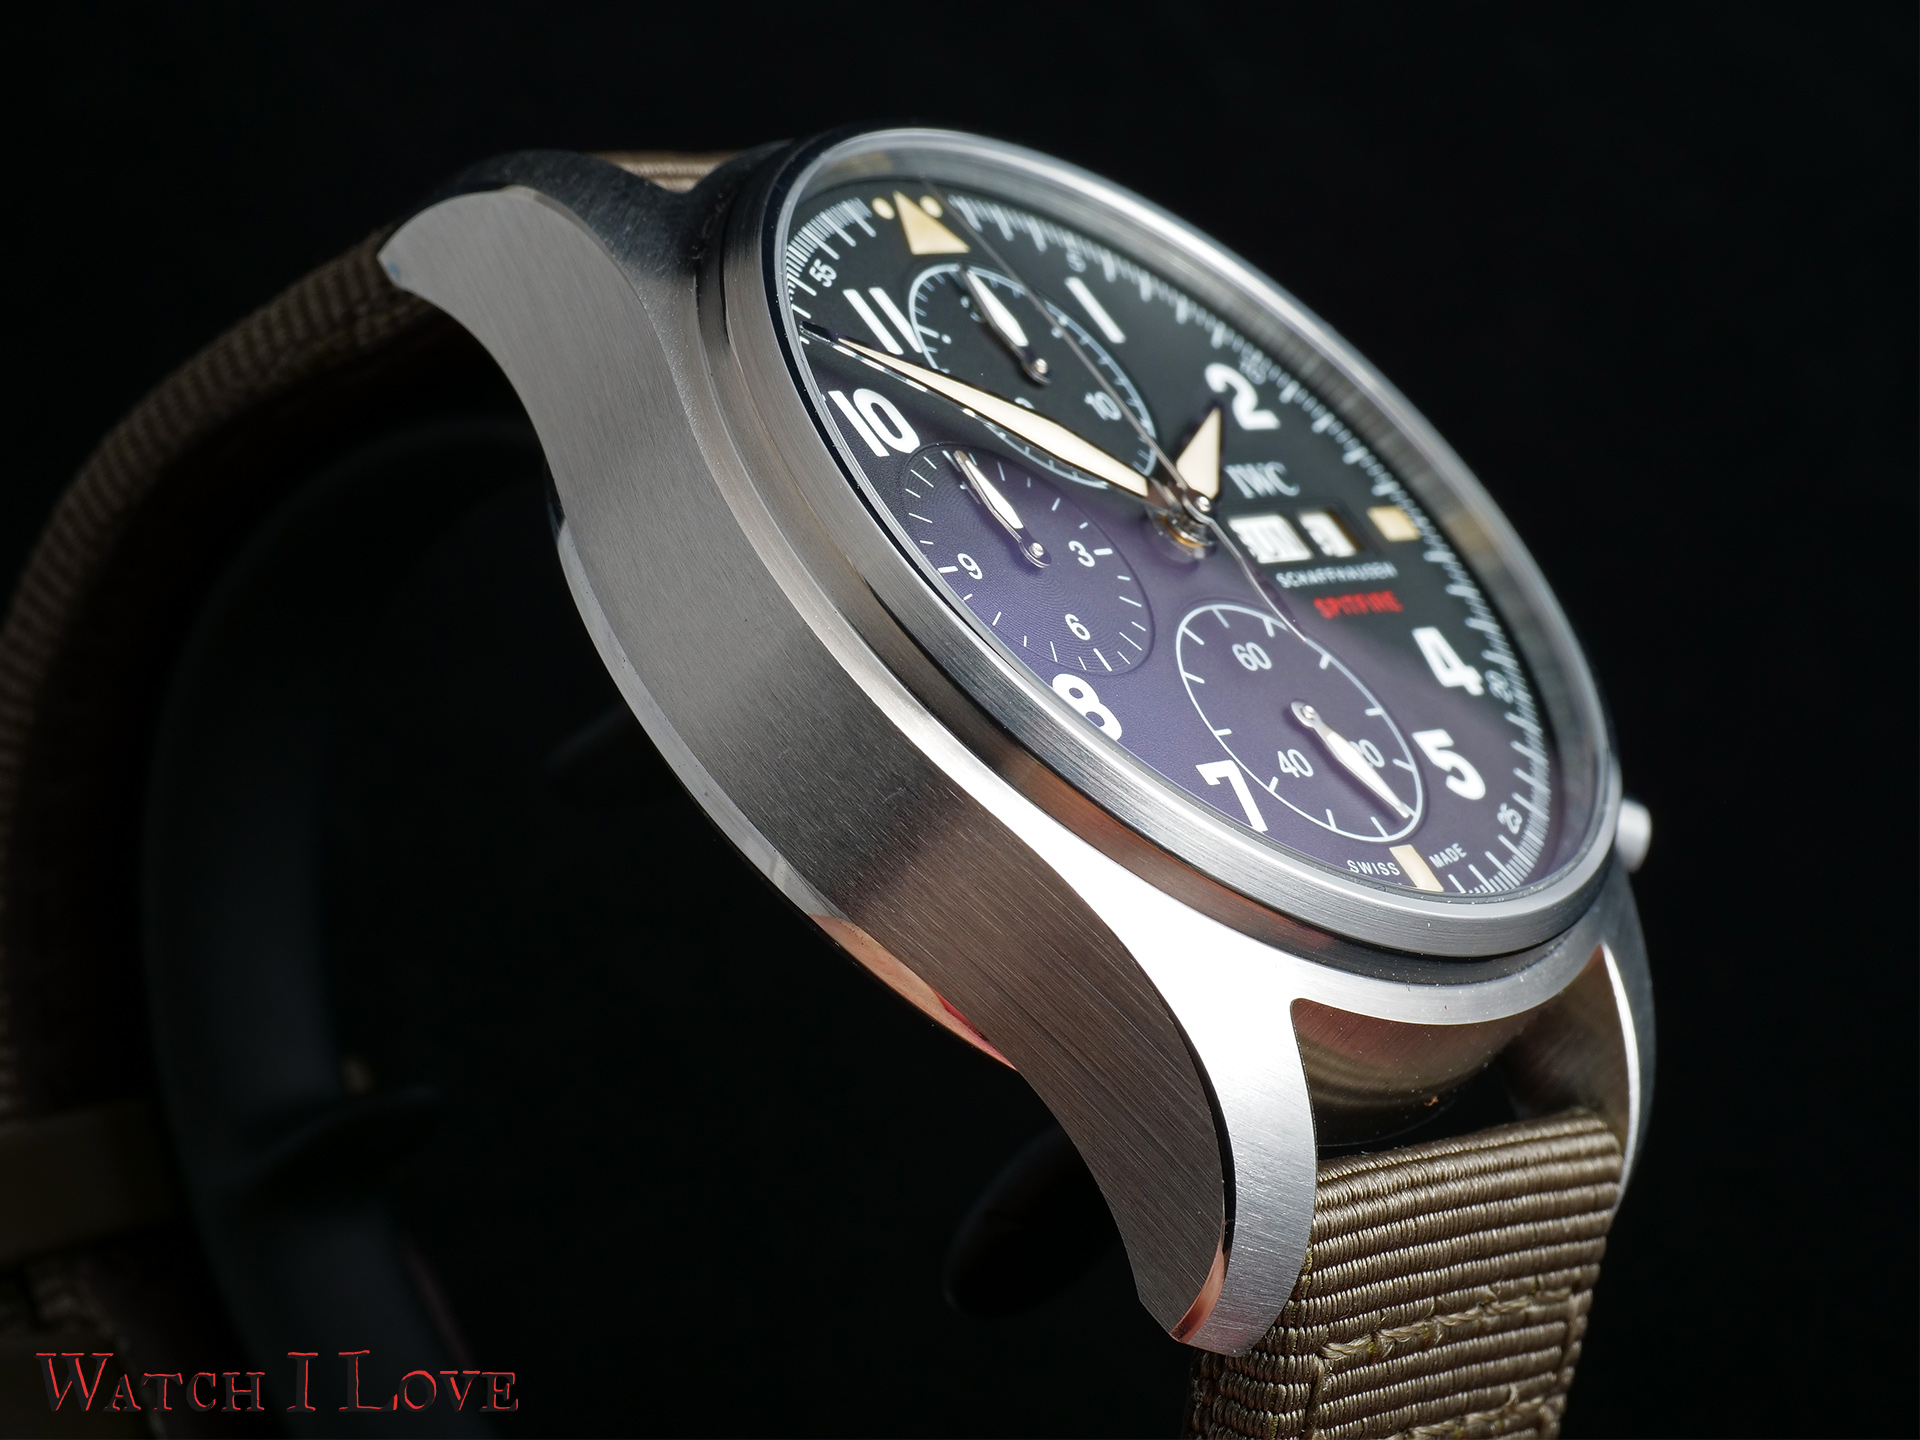 Spitfire Chronograph side view